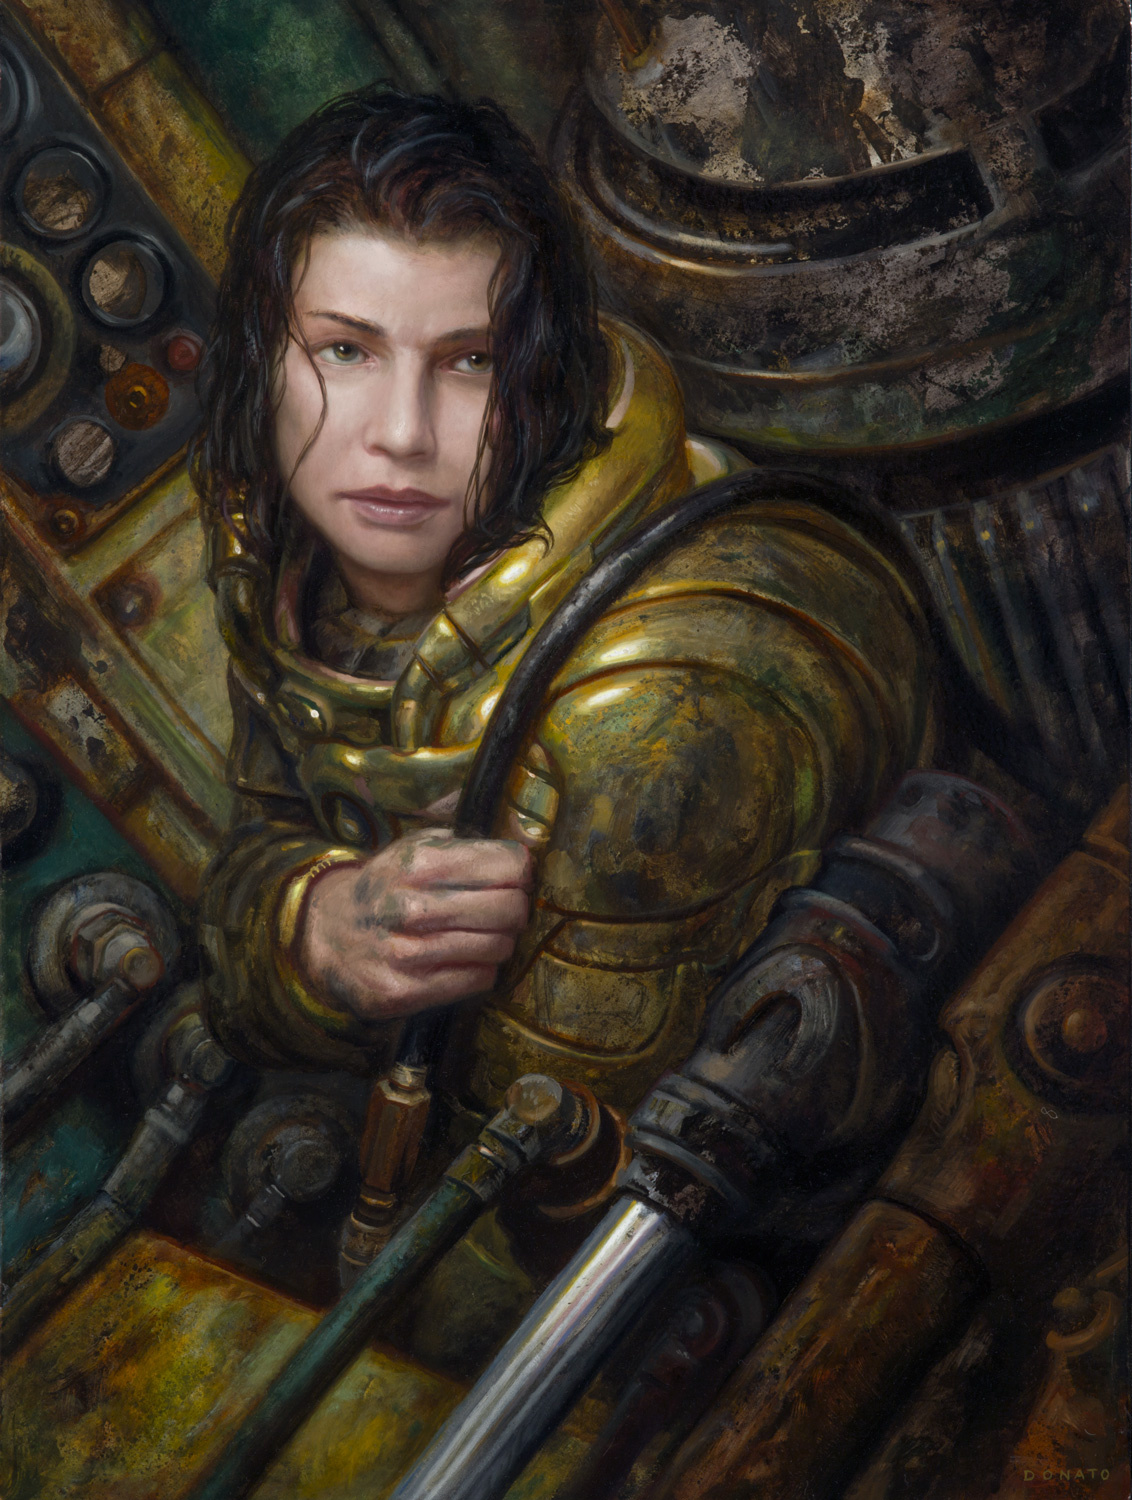 "The Mechanic - Thresholds 24"" x 18""  Oil on Panel  2019 collection of Lizanne and Paul Lizotte"